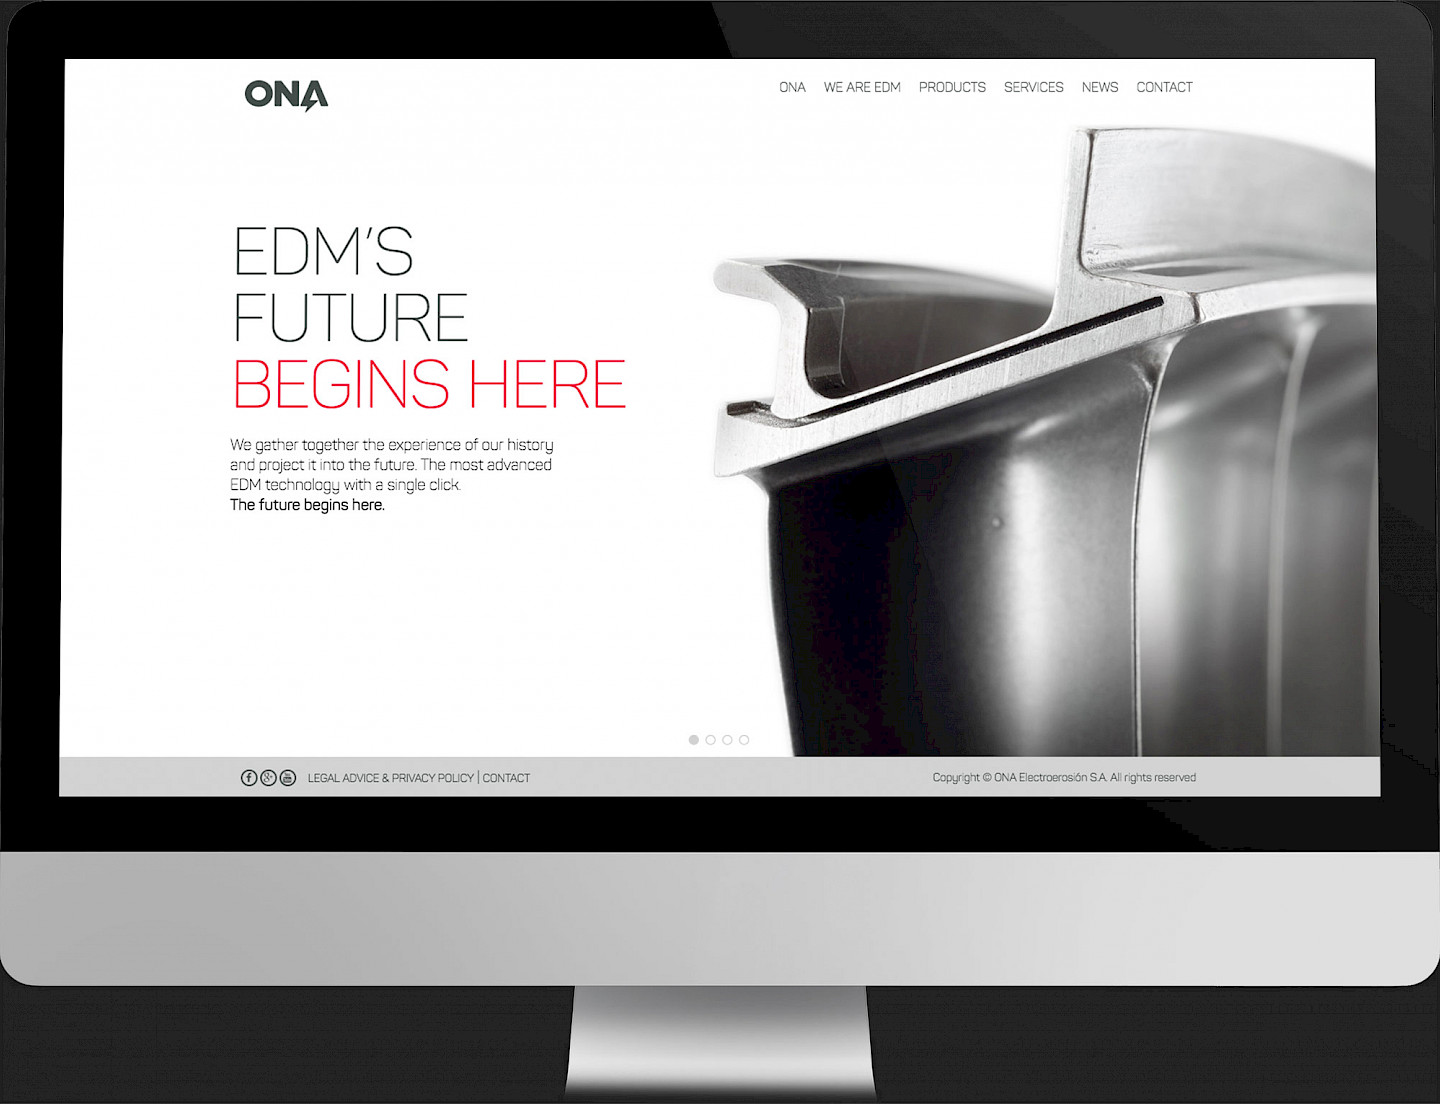 05 move website narrative ona digital spaces technology branding design